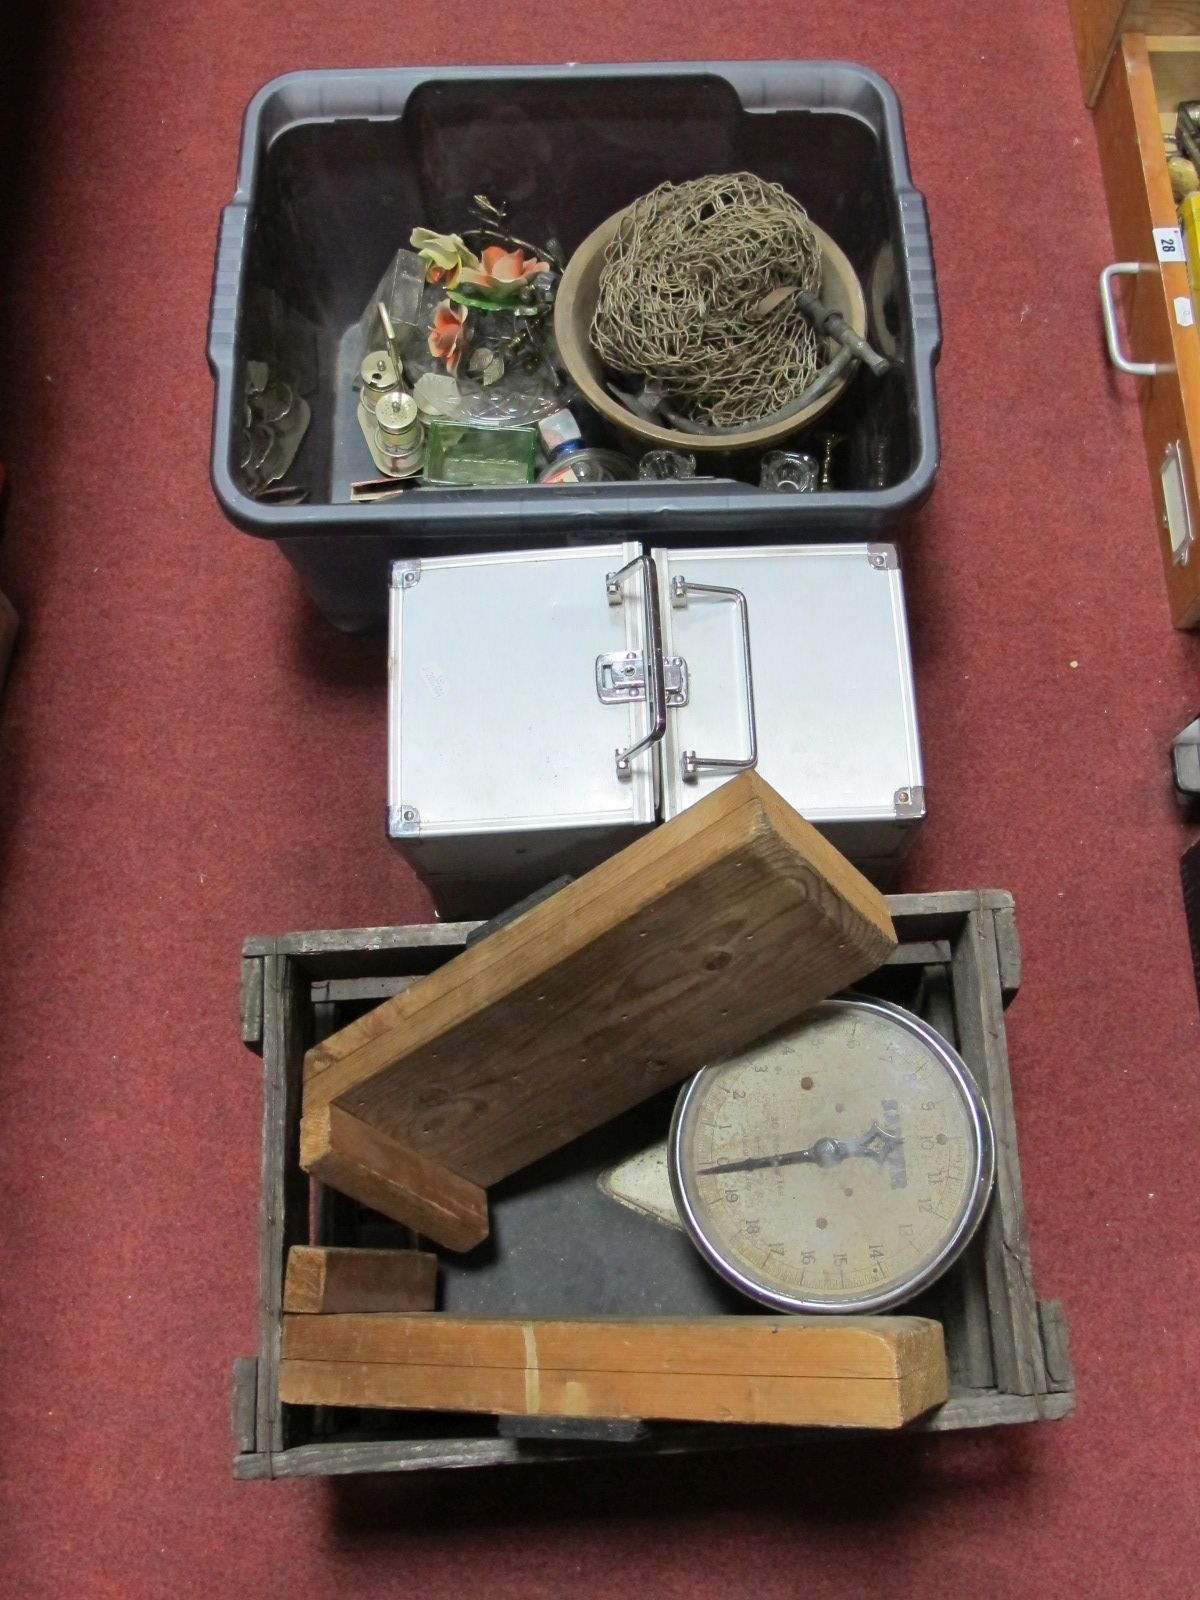 Lot 16 - Salter Scales, net, glassware, crate, metal travelling case, etc.